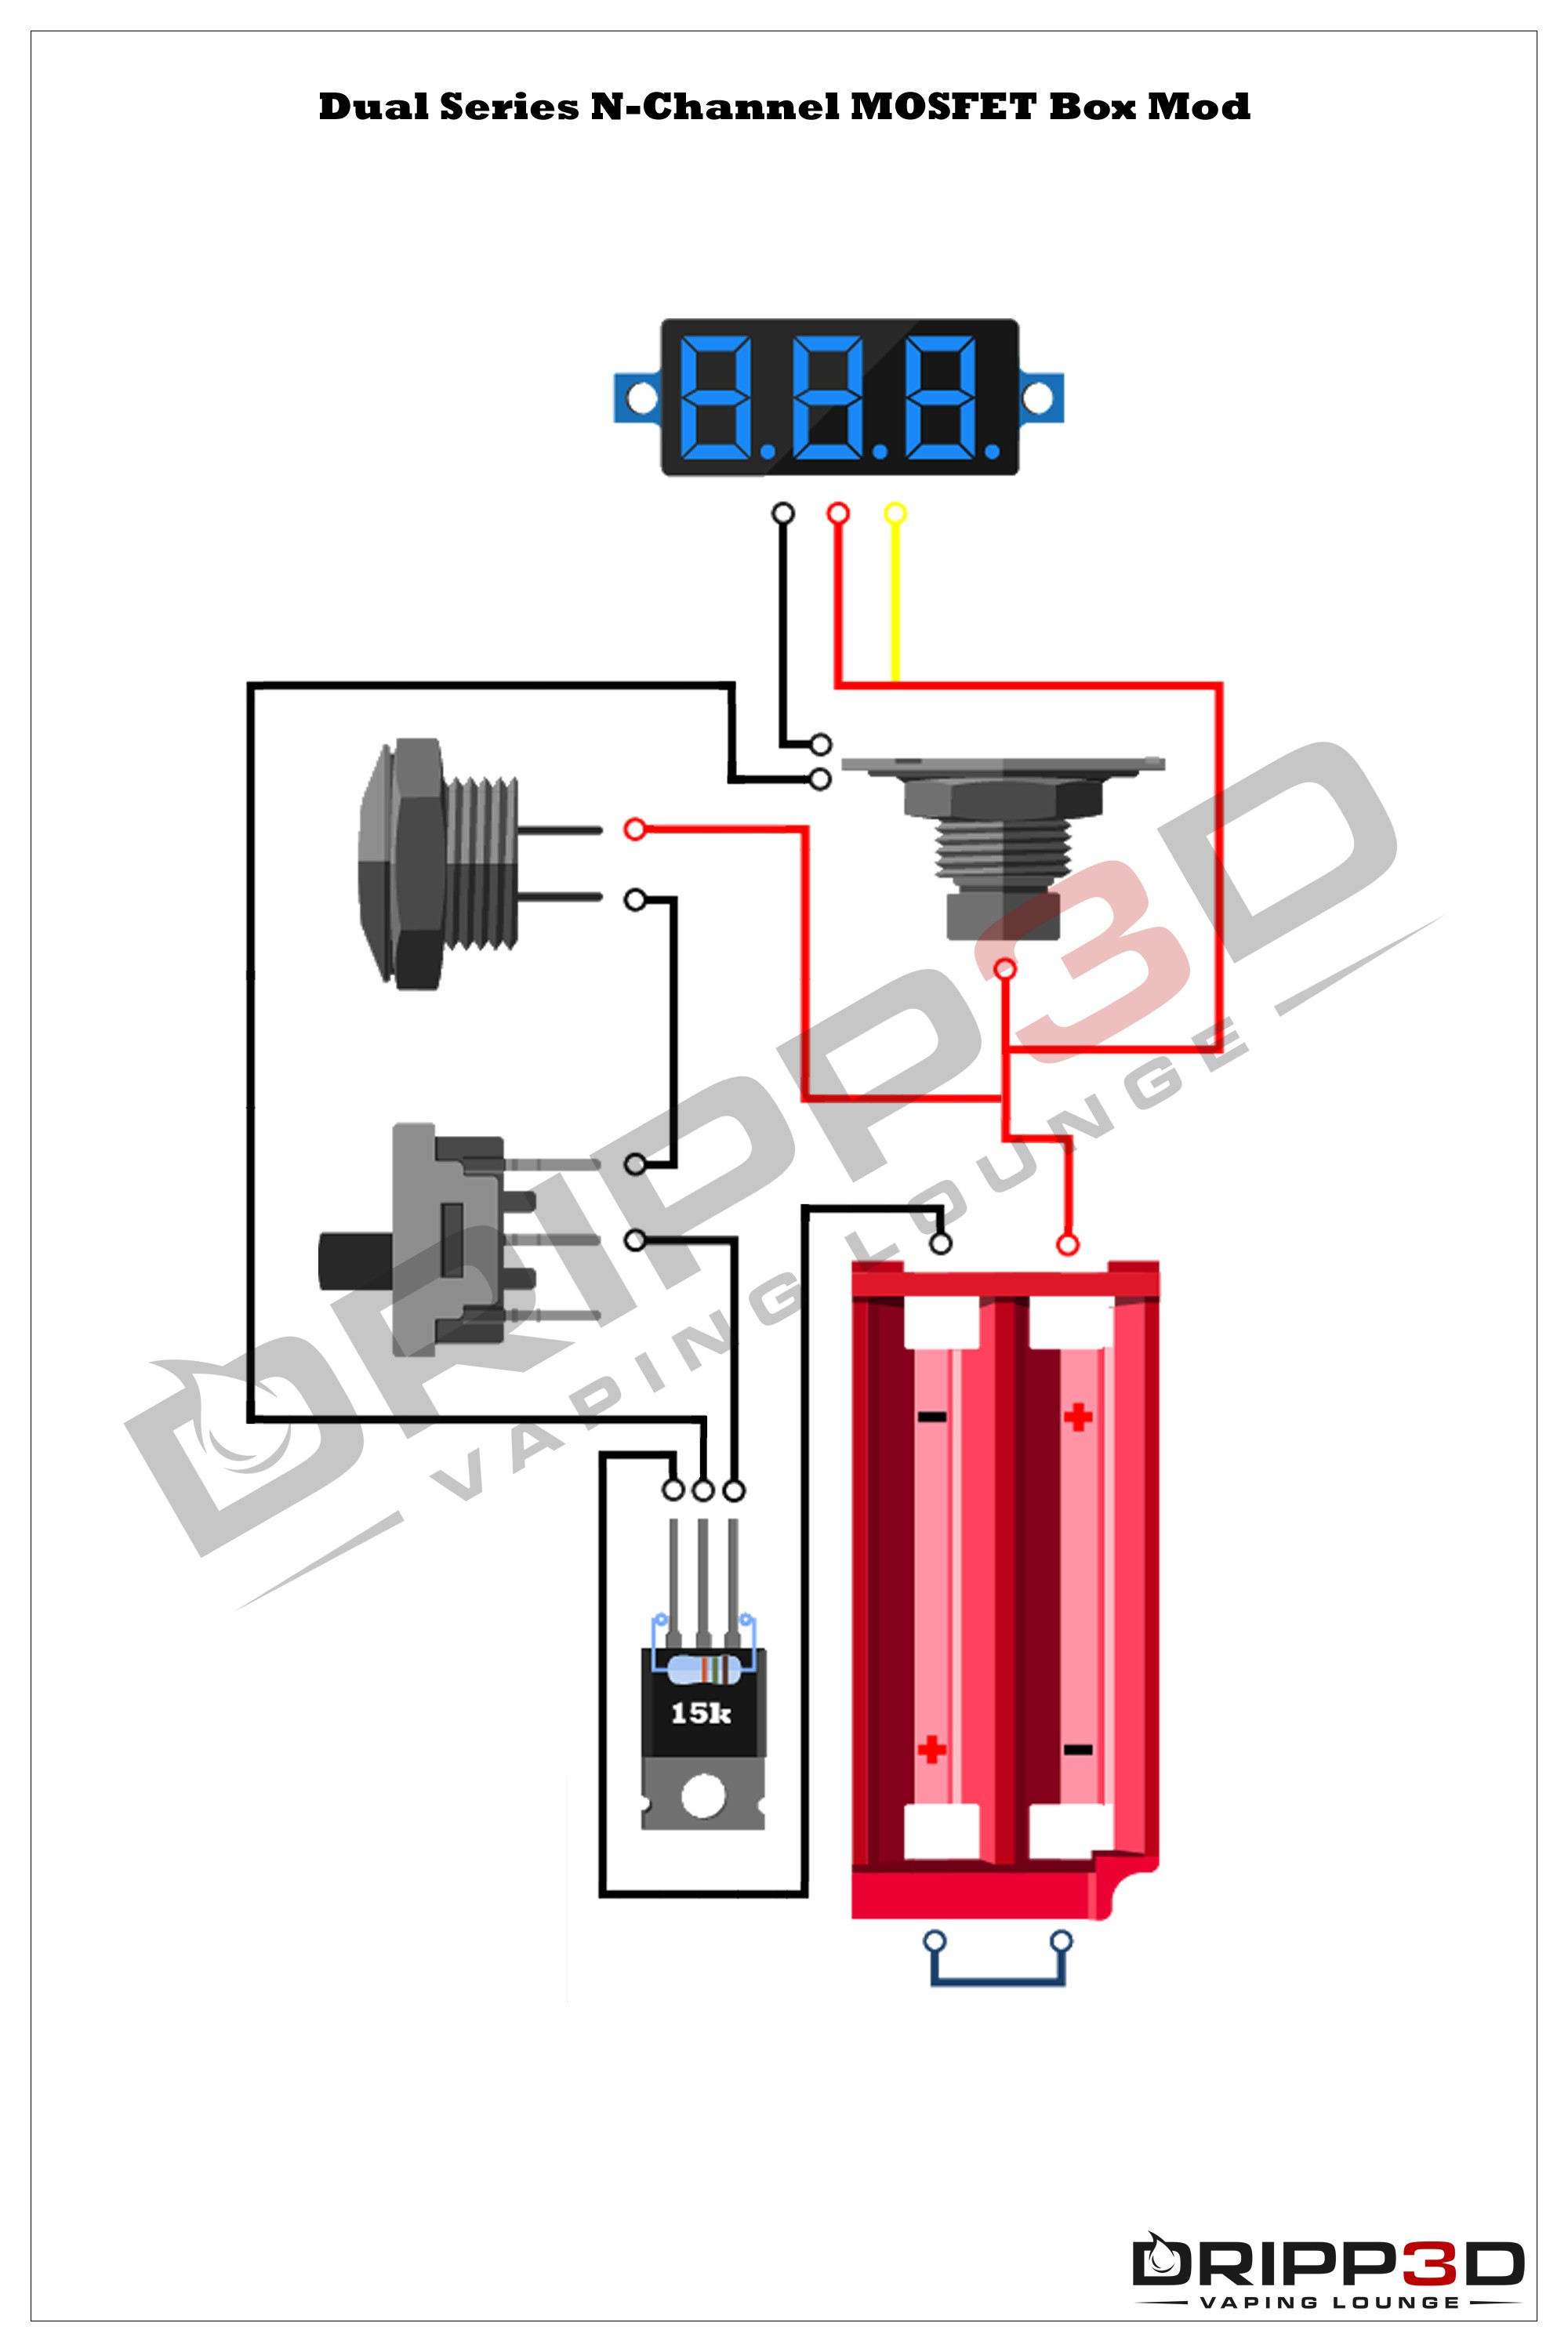 Mechanical Box Mod Wiring Diagram Mos Fet Hight Resolution Of Unregulated Electrical Schematics E Cig